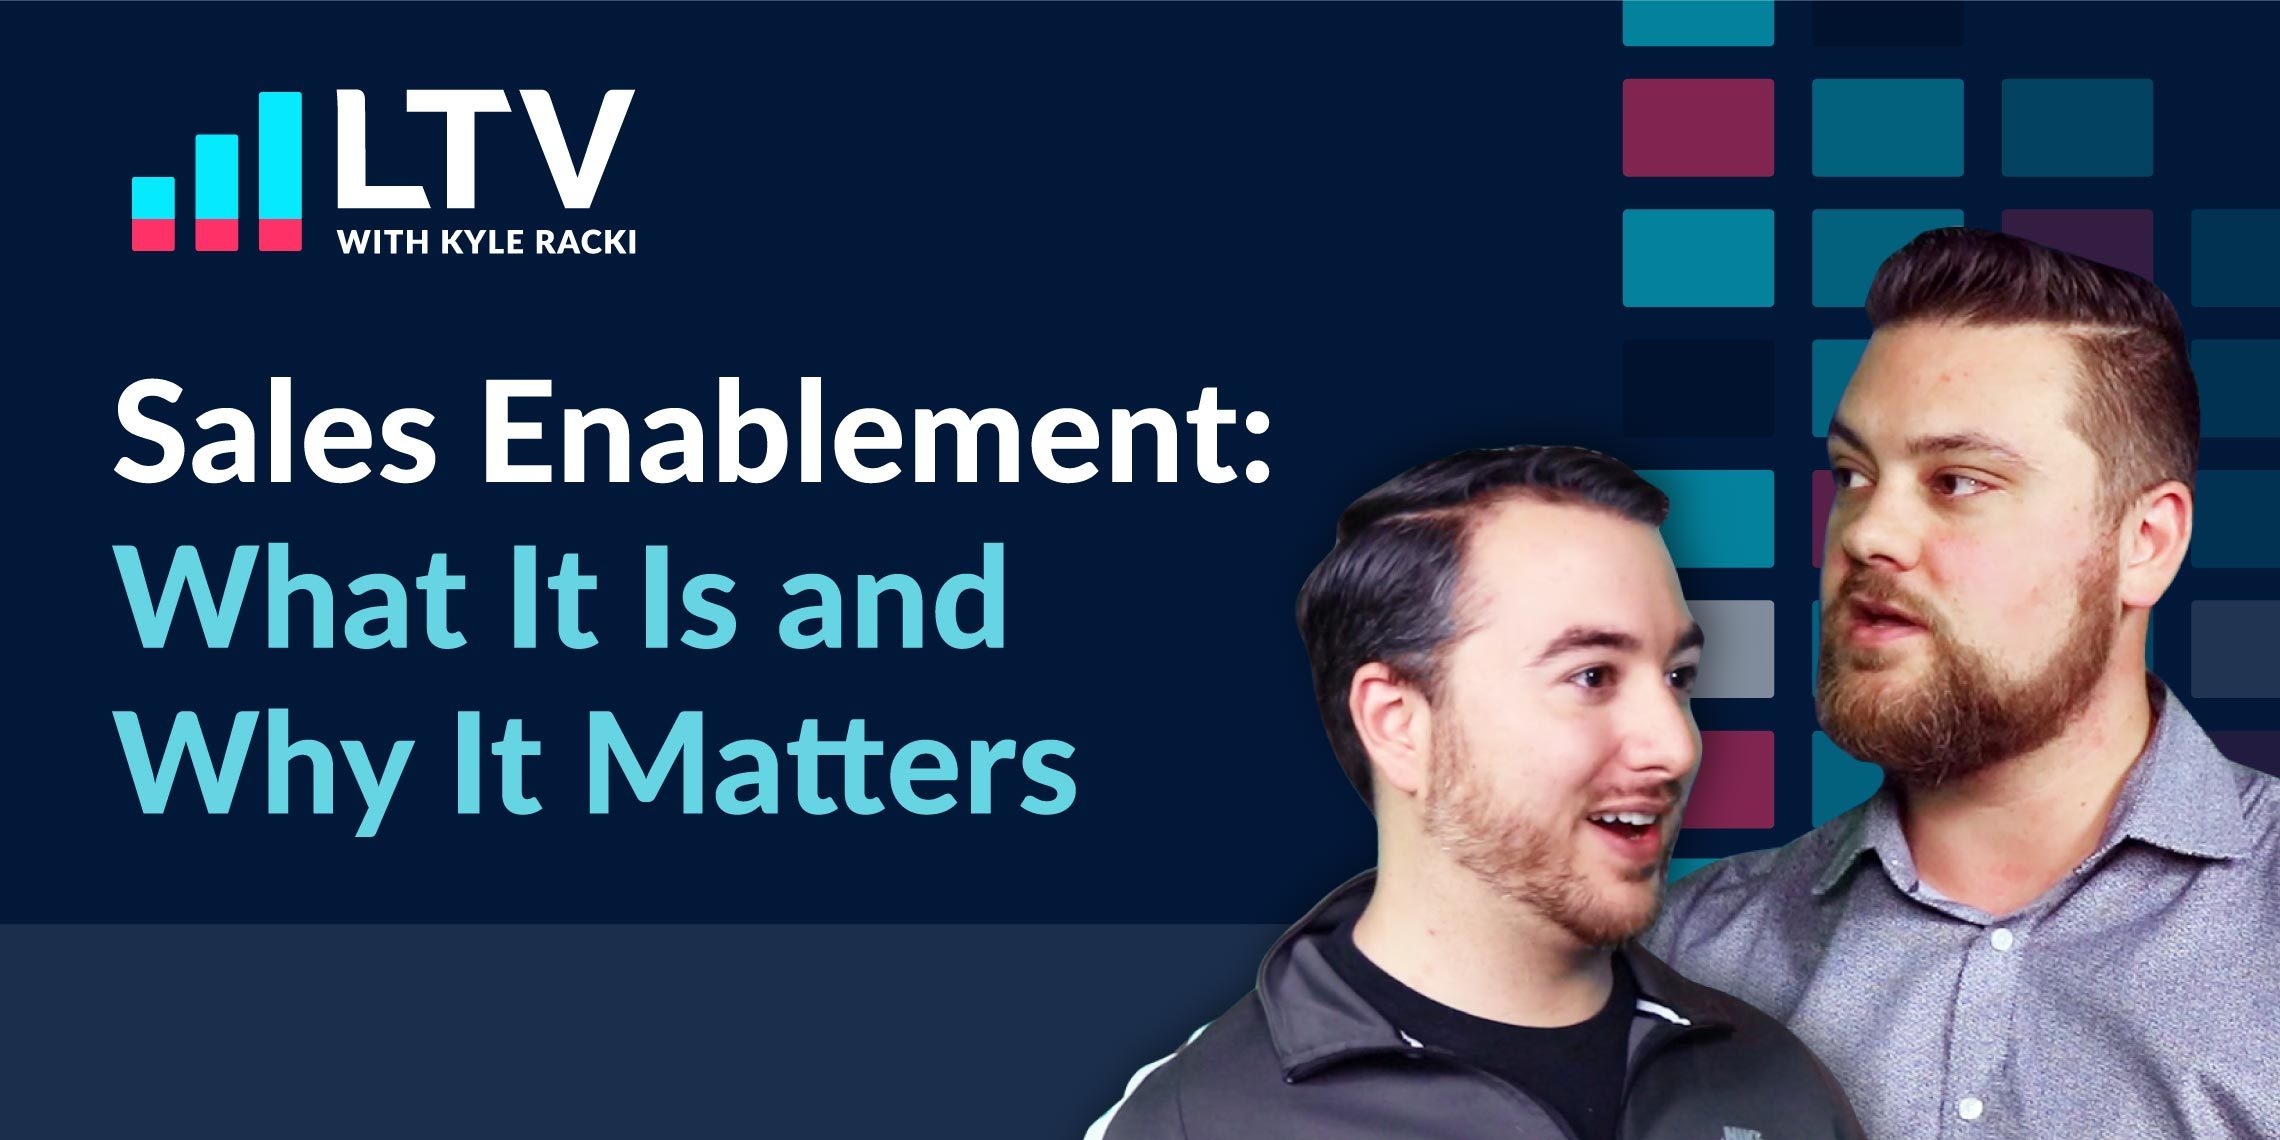 Sales Enablement: What It Is and Why It Matters